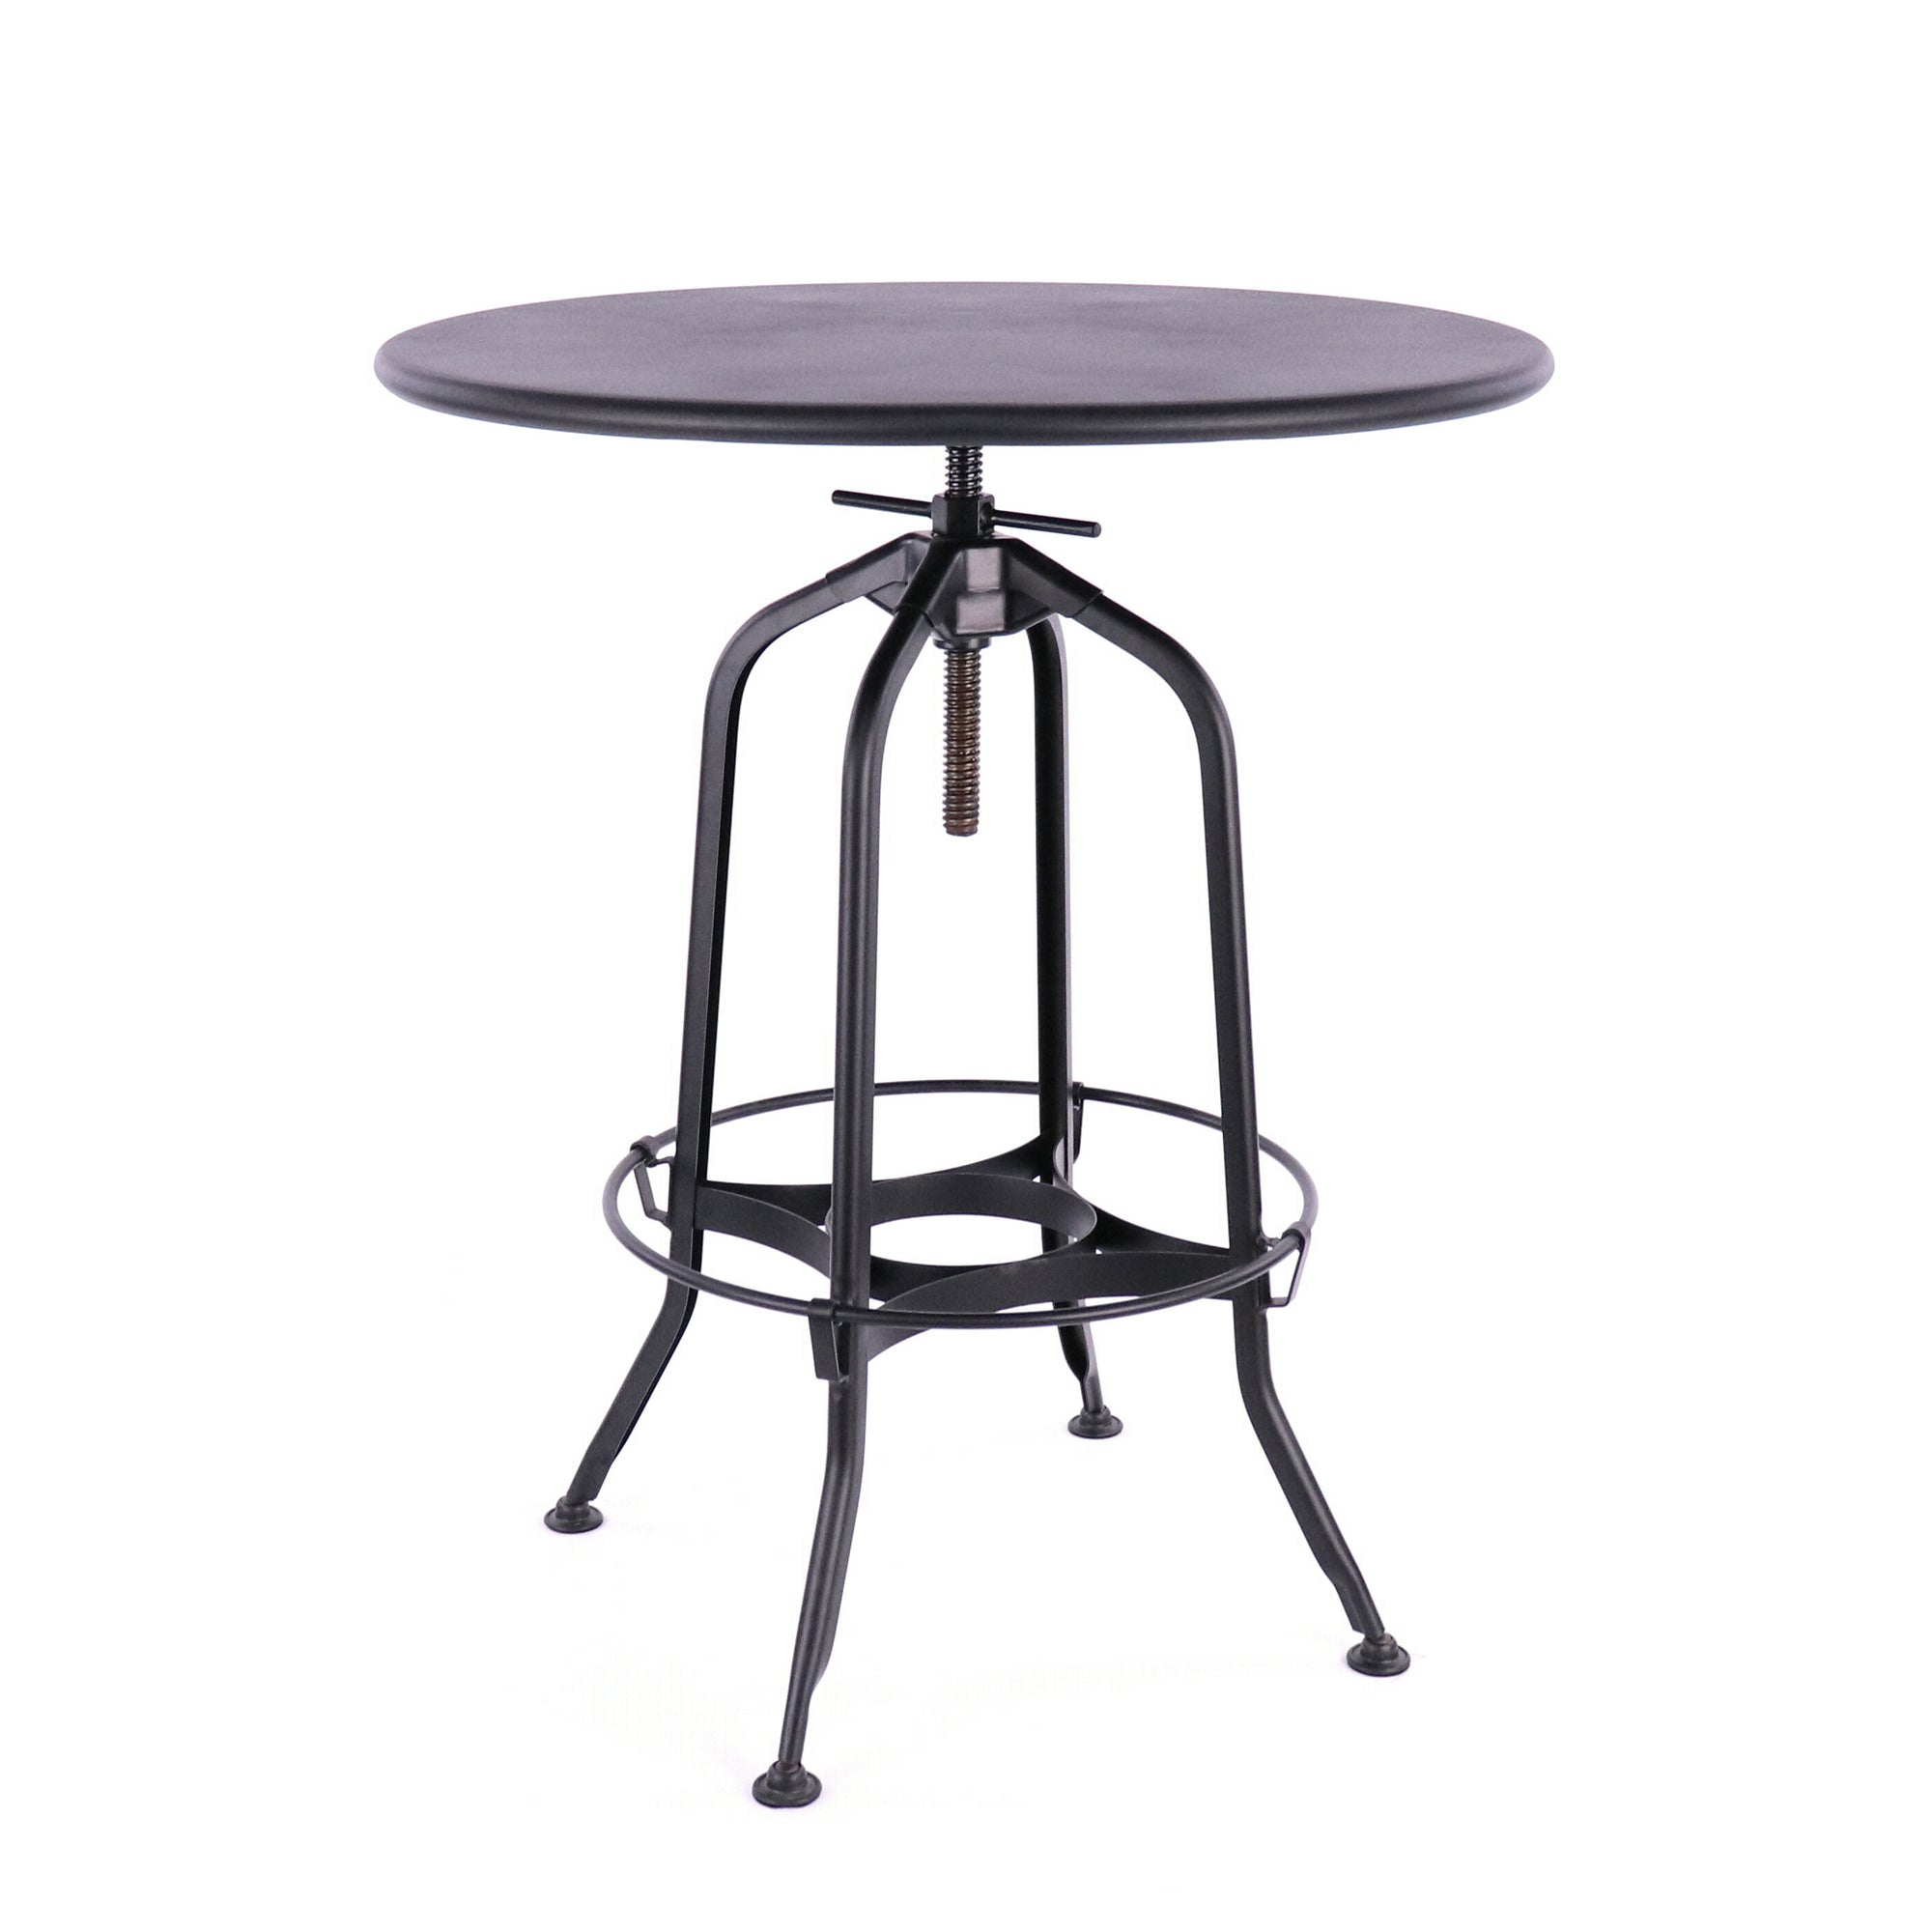 DesignLabMN-Toledo Adjustable Bar Table-Bar Tables-MODTEMPO